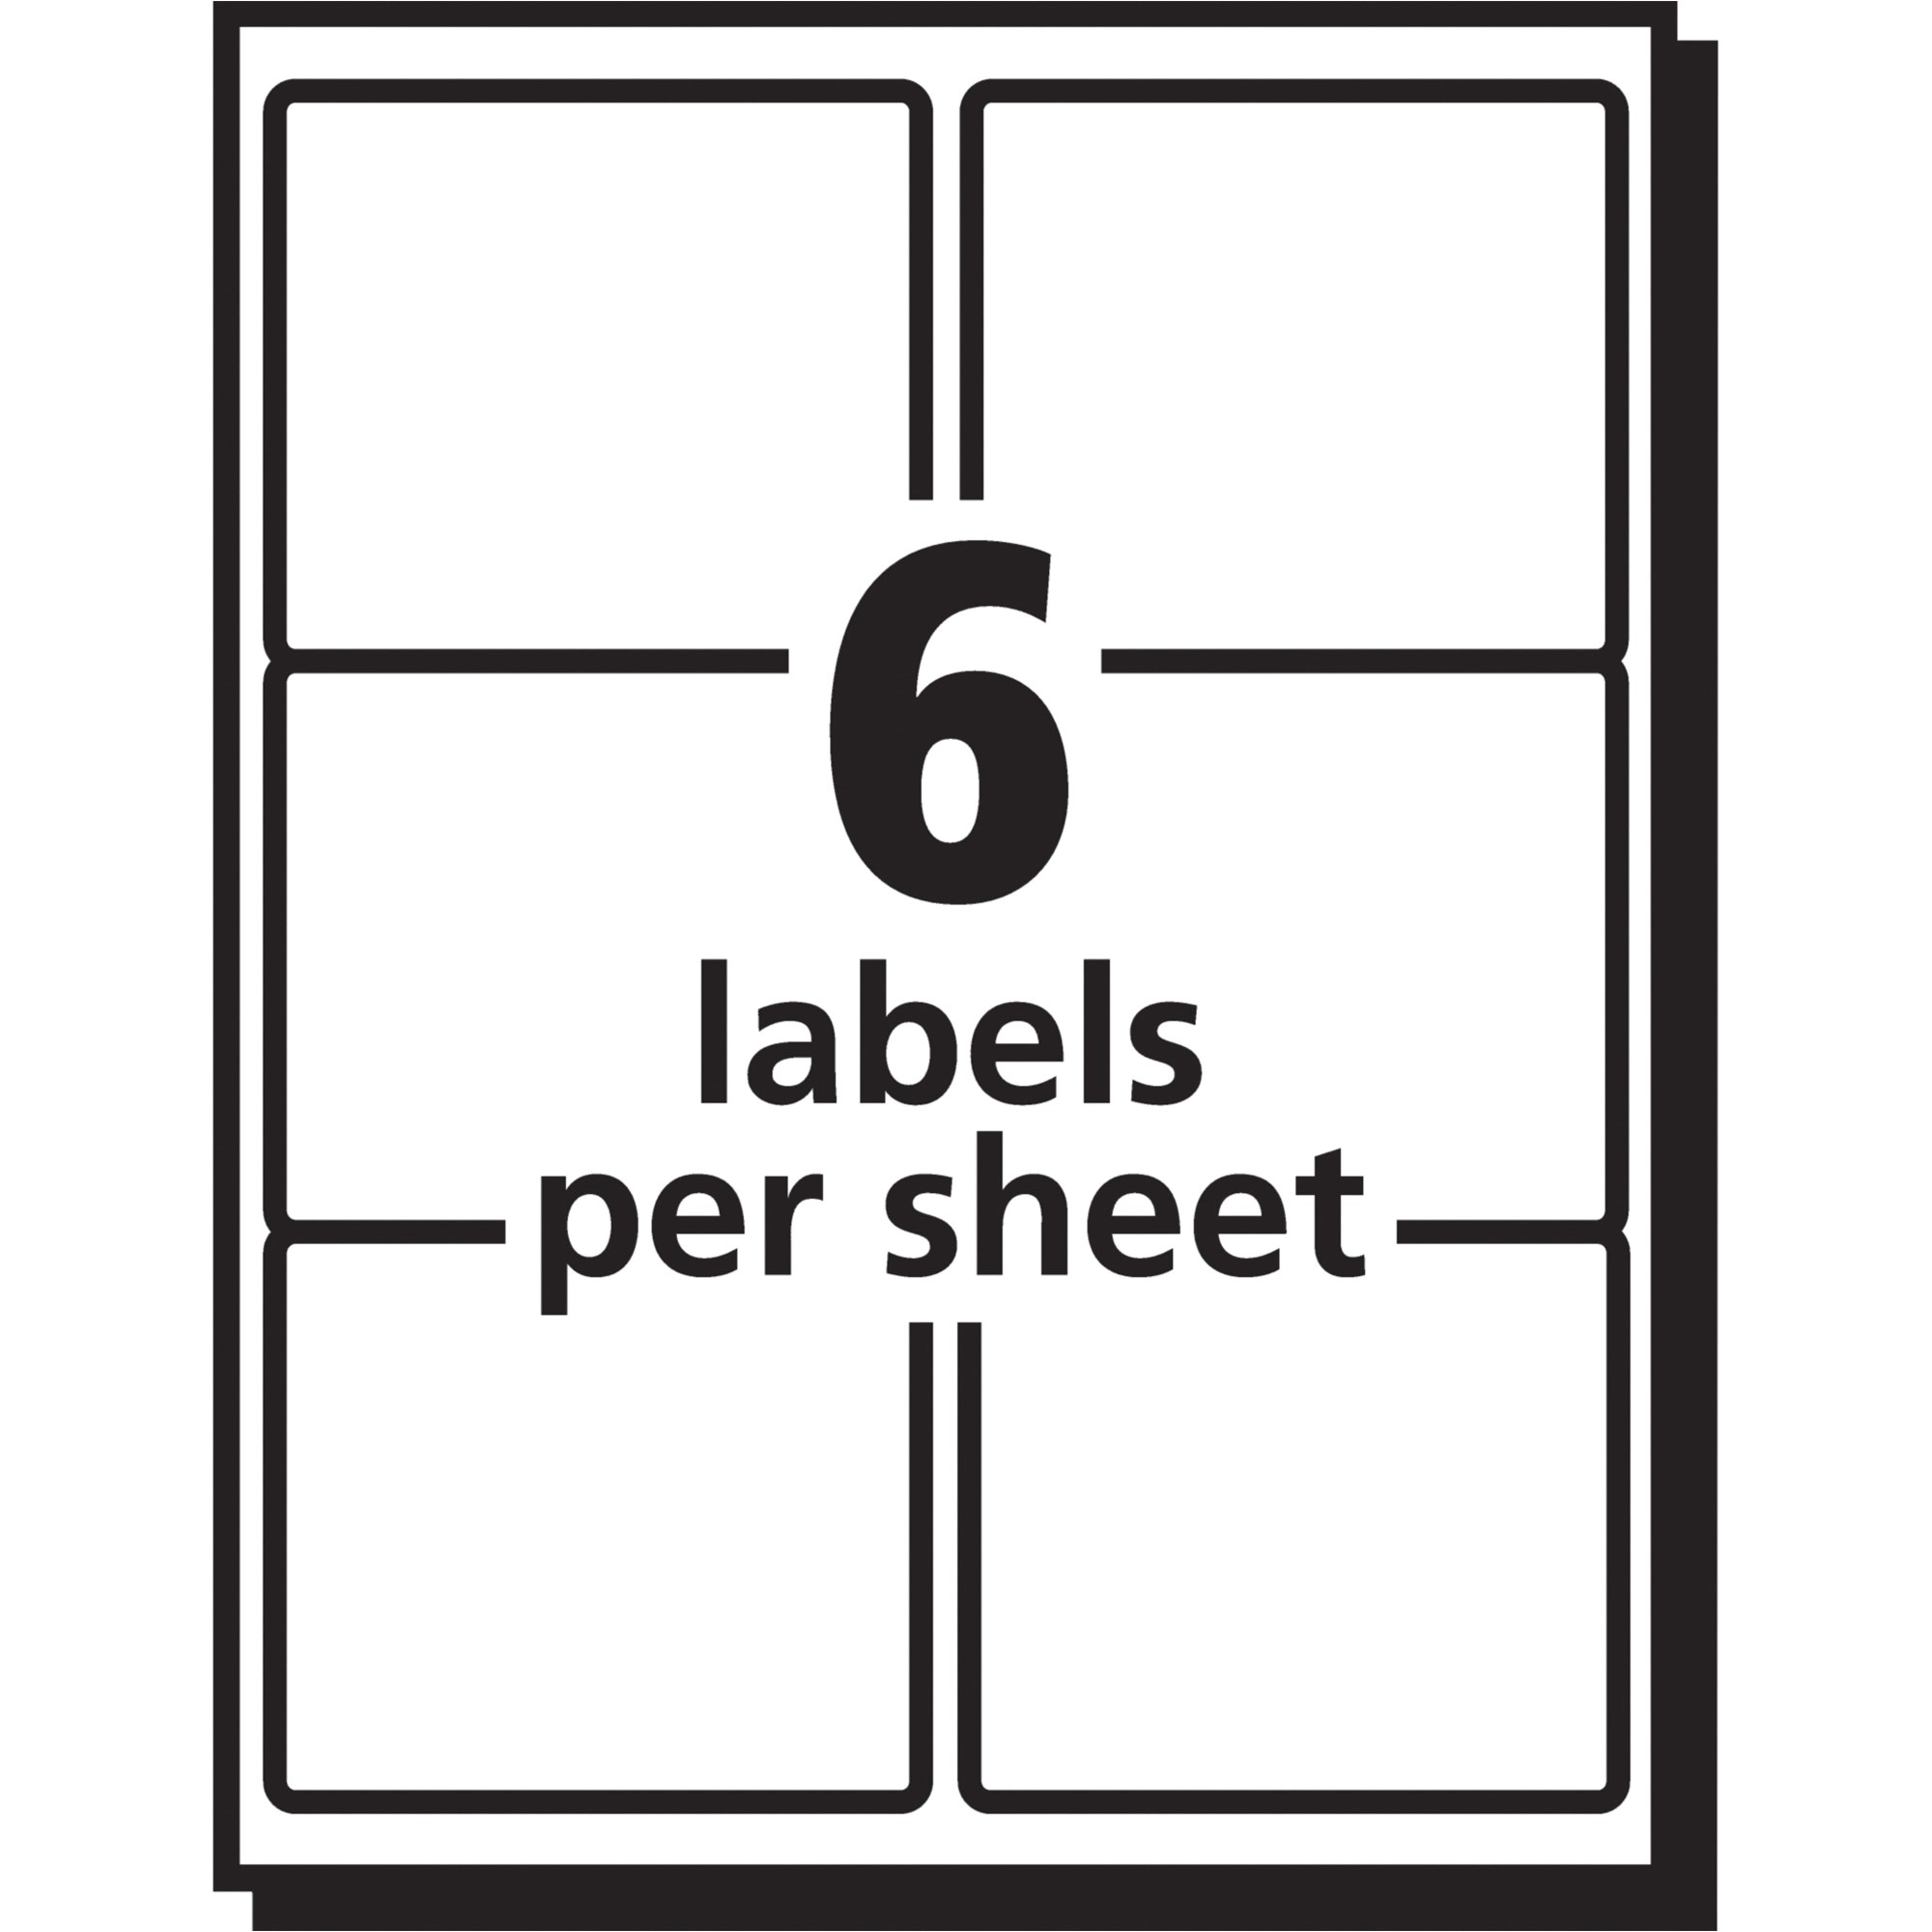 Avery Labels 6 Per Page Template Avery Easy Peel Mailing Label Ave5664 Supplygeeks Com